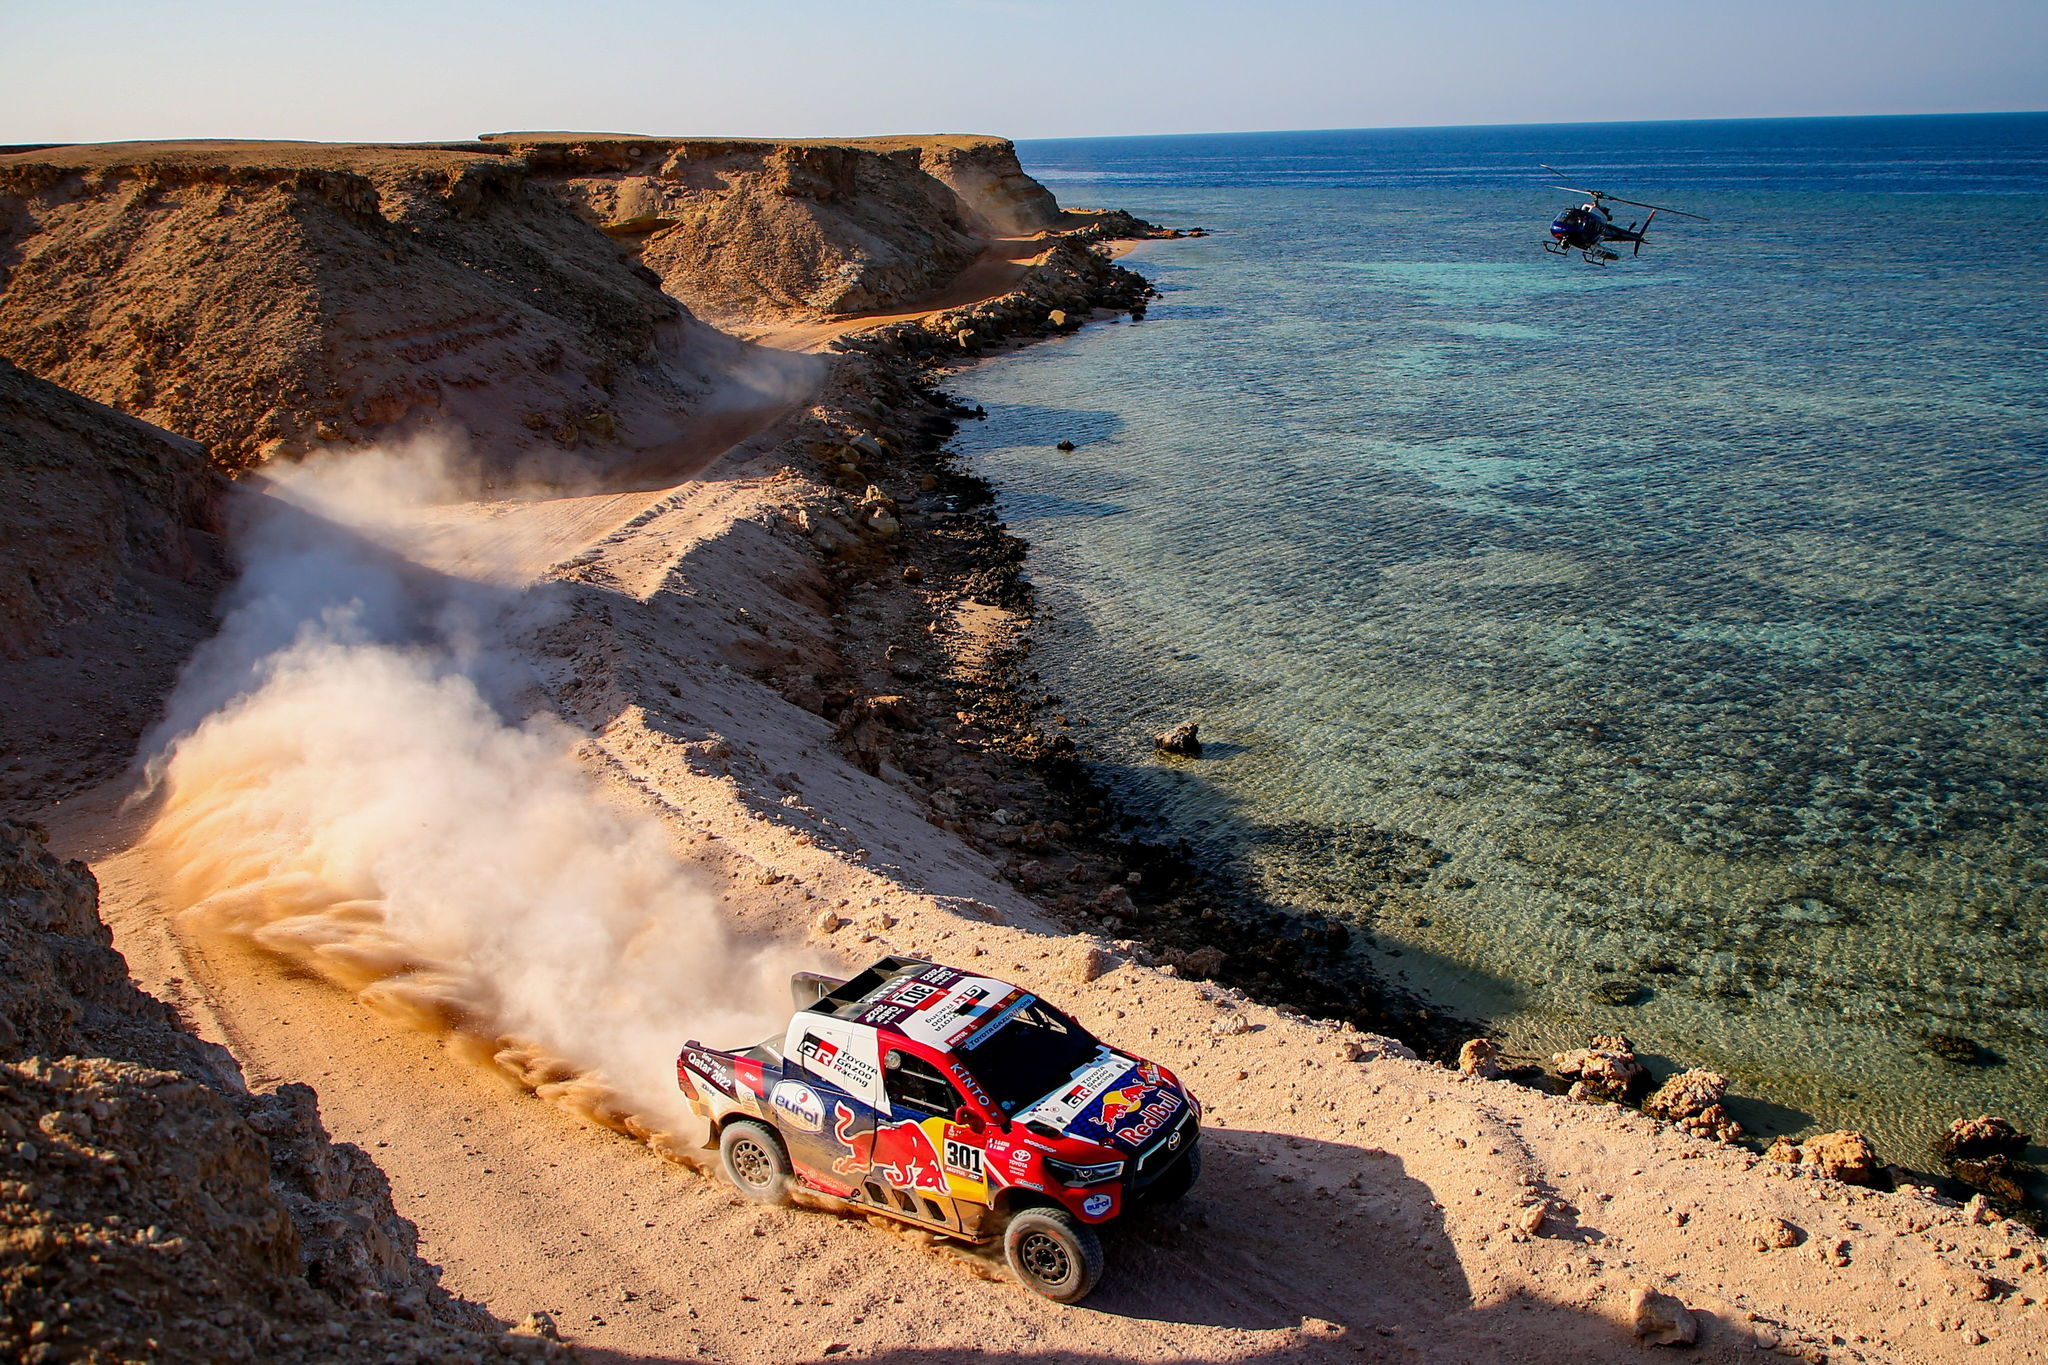 (Saudi Arabia), 12/01/2021.- A handout photo made available by ASO of Nasser Al- lt;HIT gt;Attiyah lt;/HIT gt; Nasser of Qatar and Matthieu Baumel of France, Toyota, Toyota Gazoo Racing, in action during the 9th stage of the Dakar 2021 between Neom and Neom, in Saudi Arabia, 12 January 2021. (Francia, Arabia Saudita, Catar) EFE/EPA/Julien Delfosse HANDOUT via ASO SHUTTERSTOCK OUT HANDOUT EDITORIAL USE ONLY/NO SALES/NO ARCHIVES